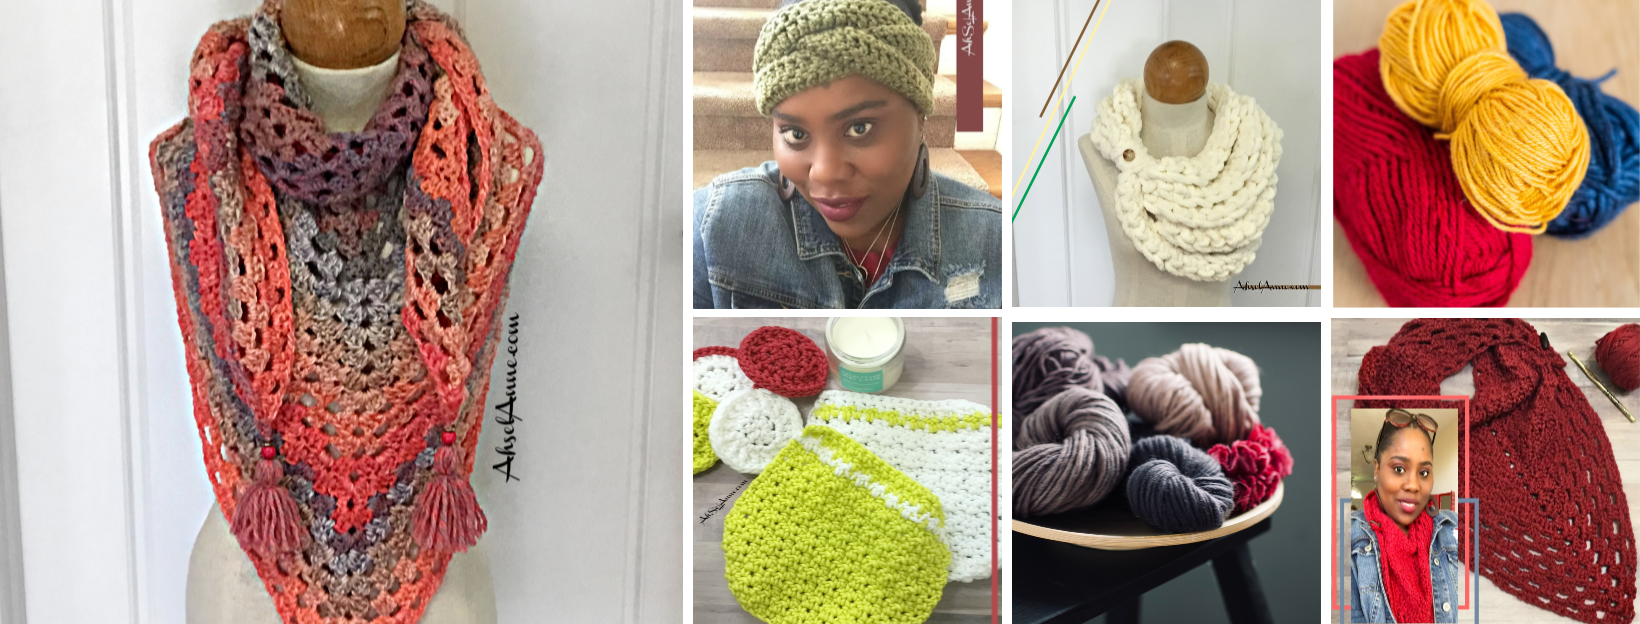 Crocheting and Teaching Others to Crochet